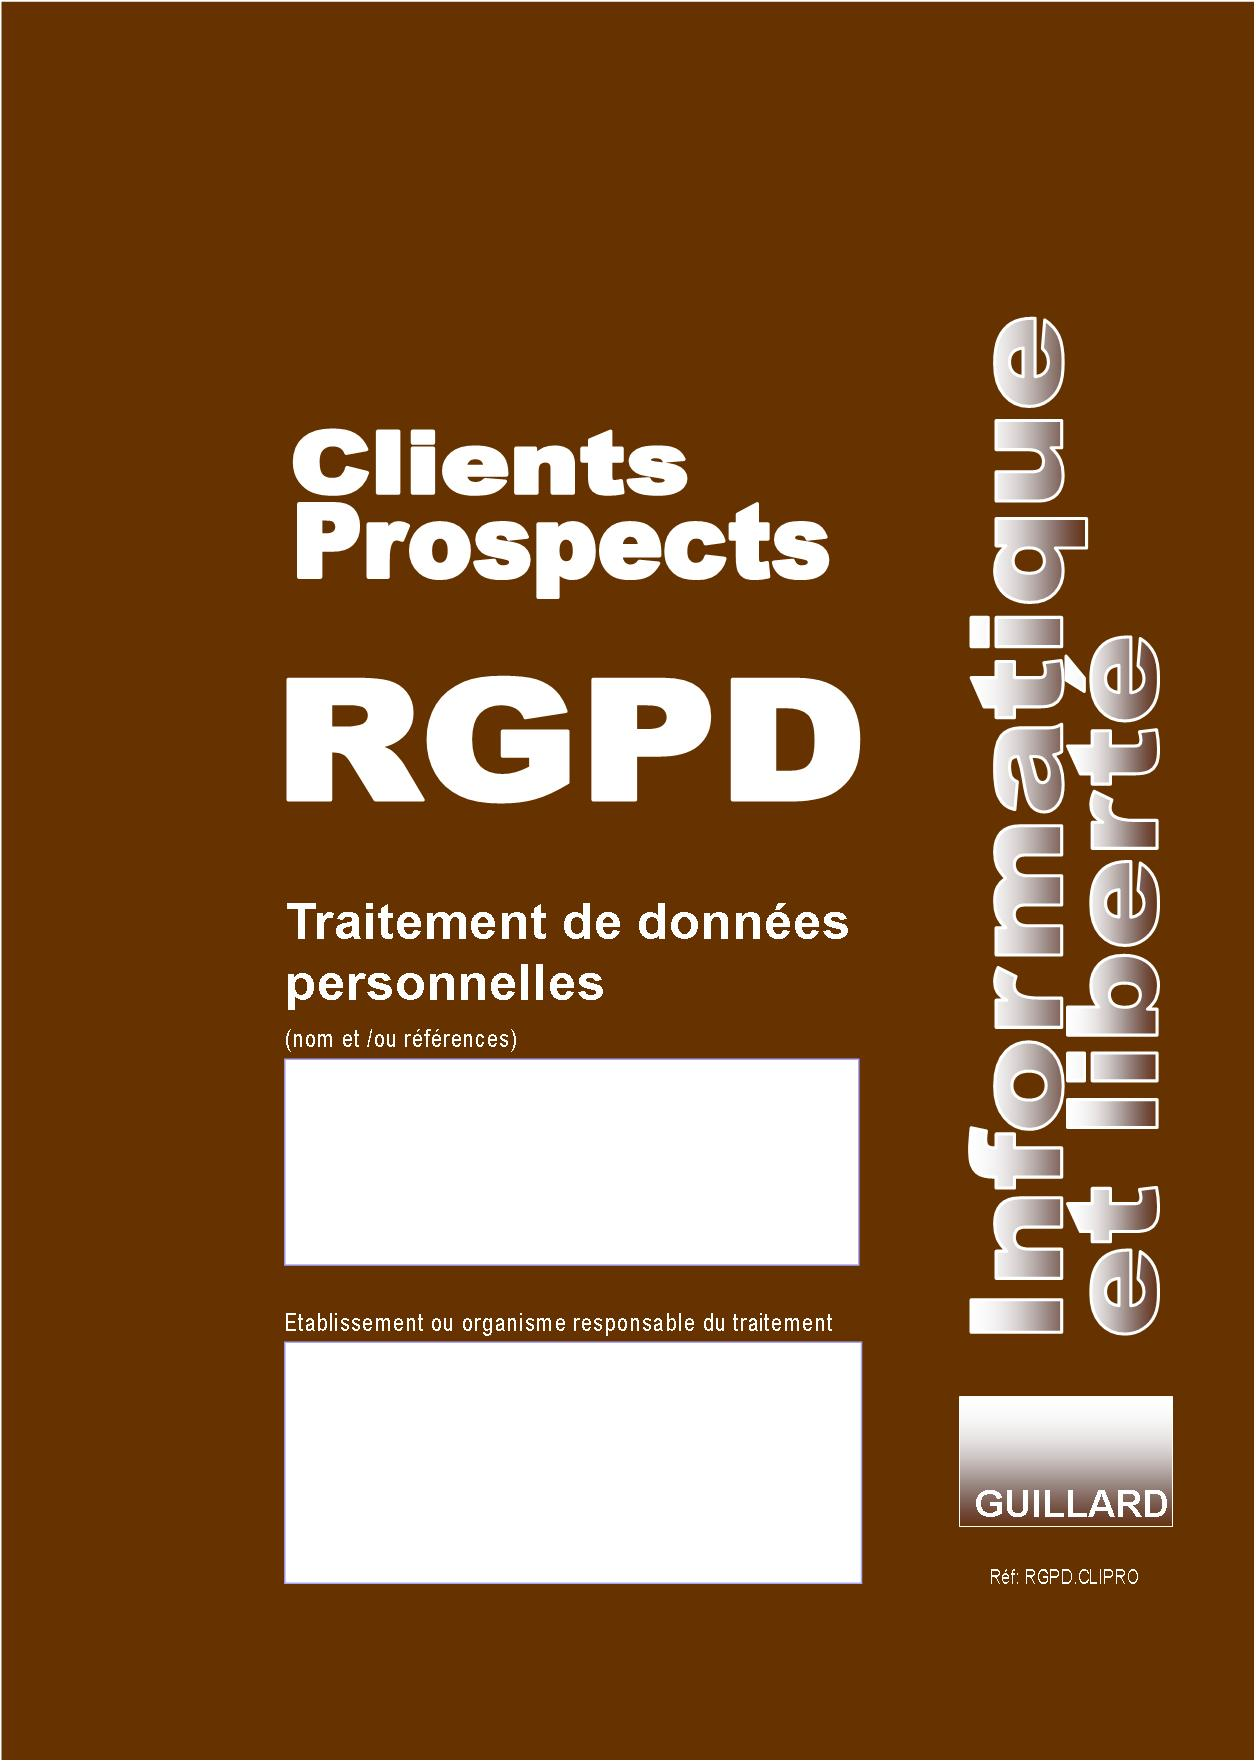 Registre RGPD CLIENTS PROSPECTS de TRAITEMENT DES DONNEES PERSONNELLES - RGPD.CPVL